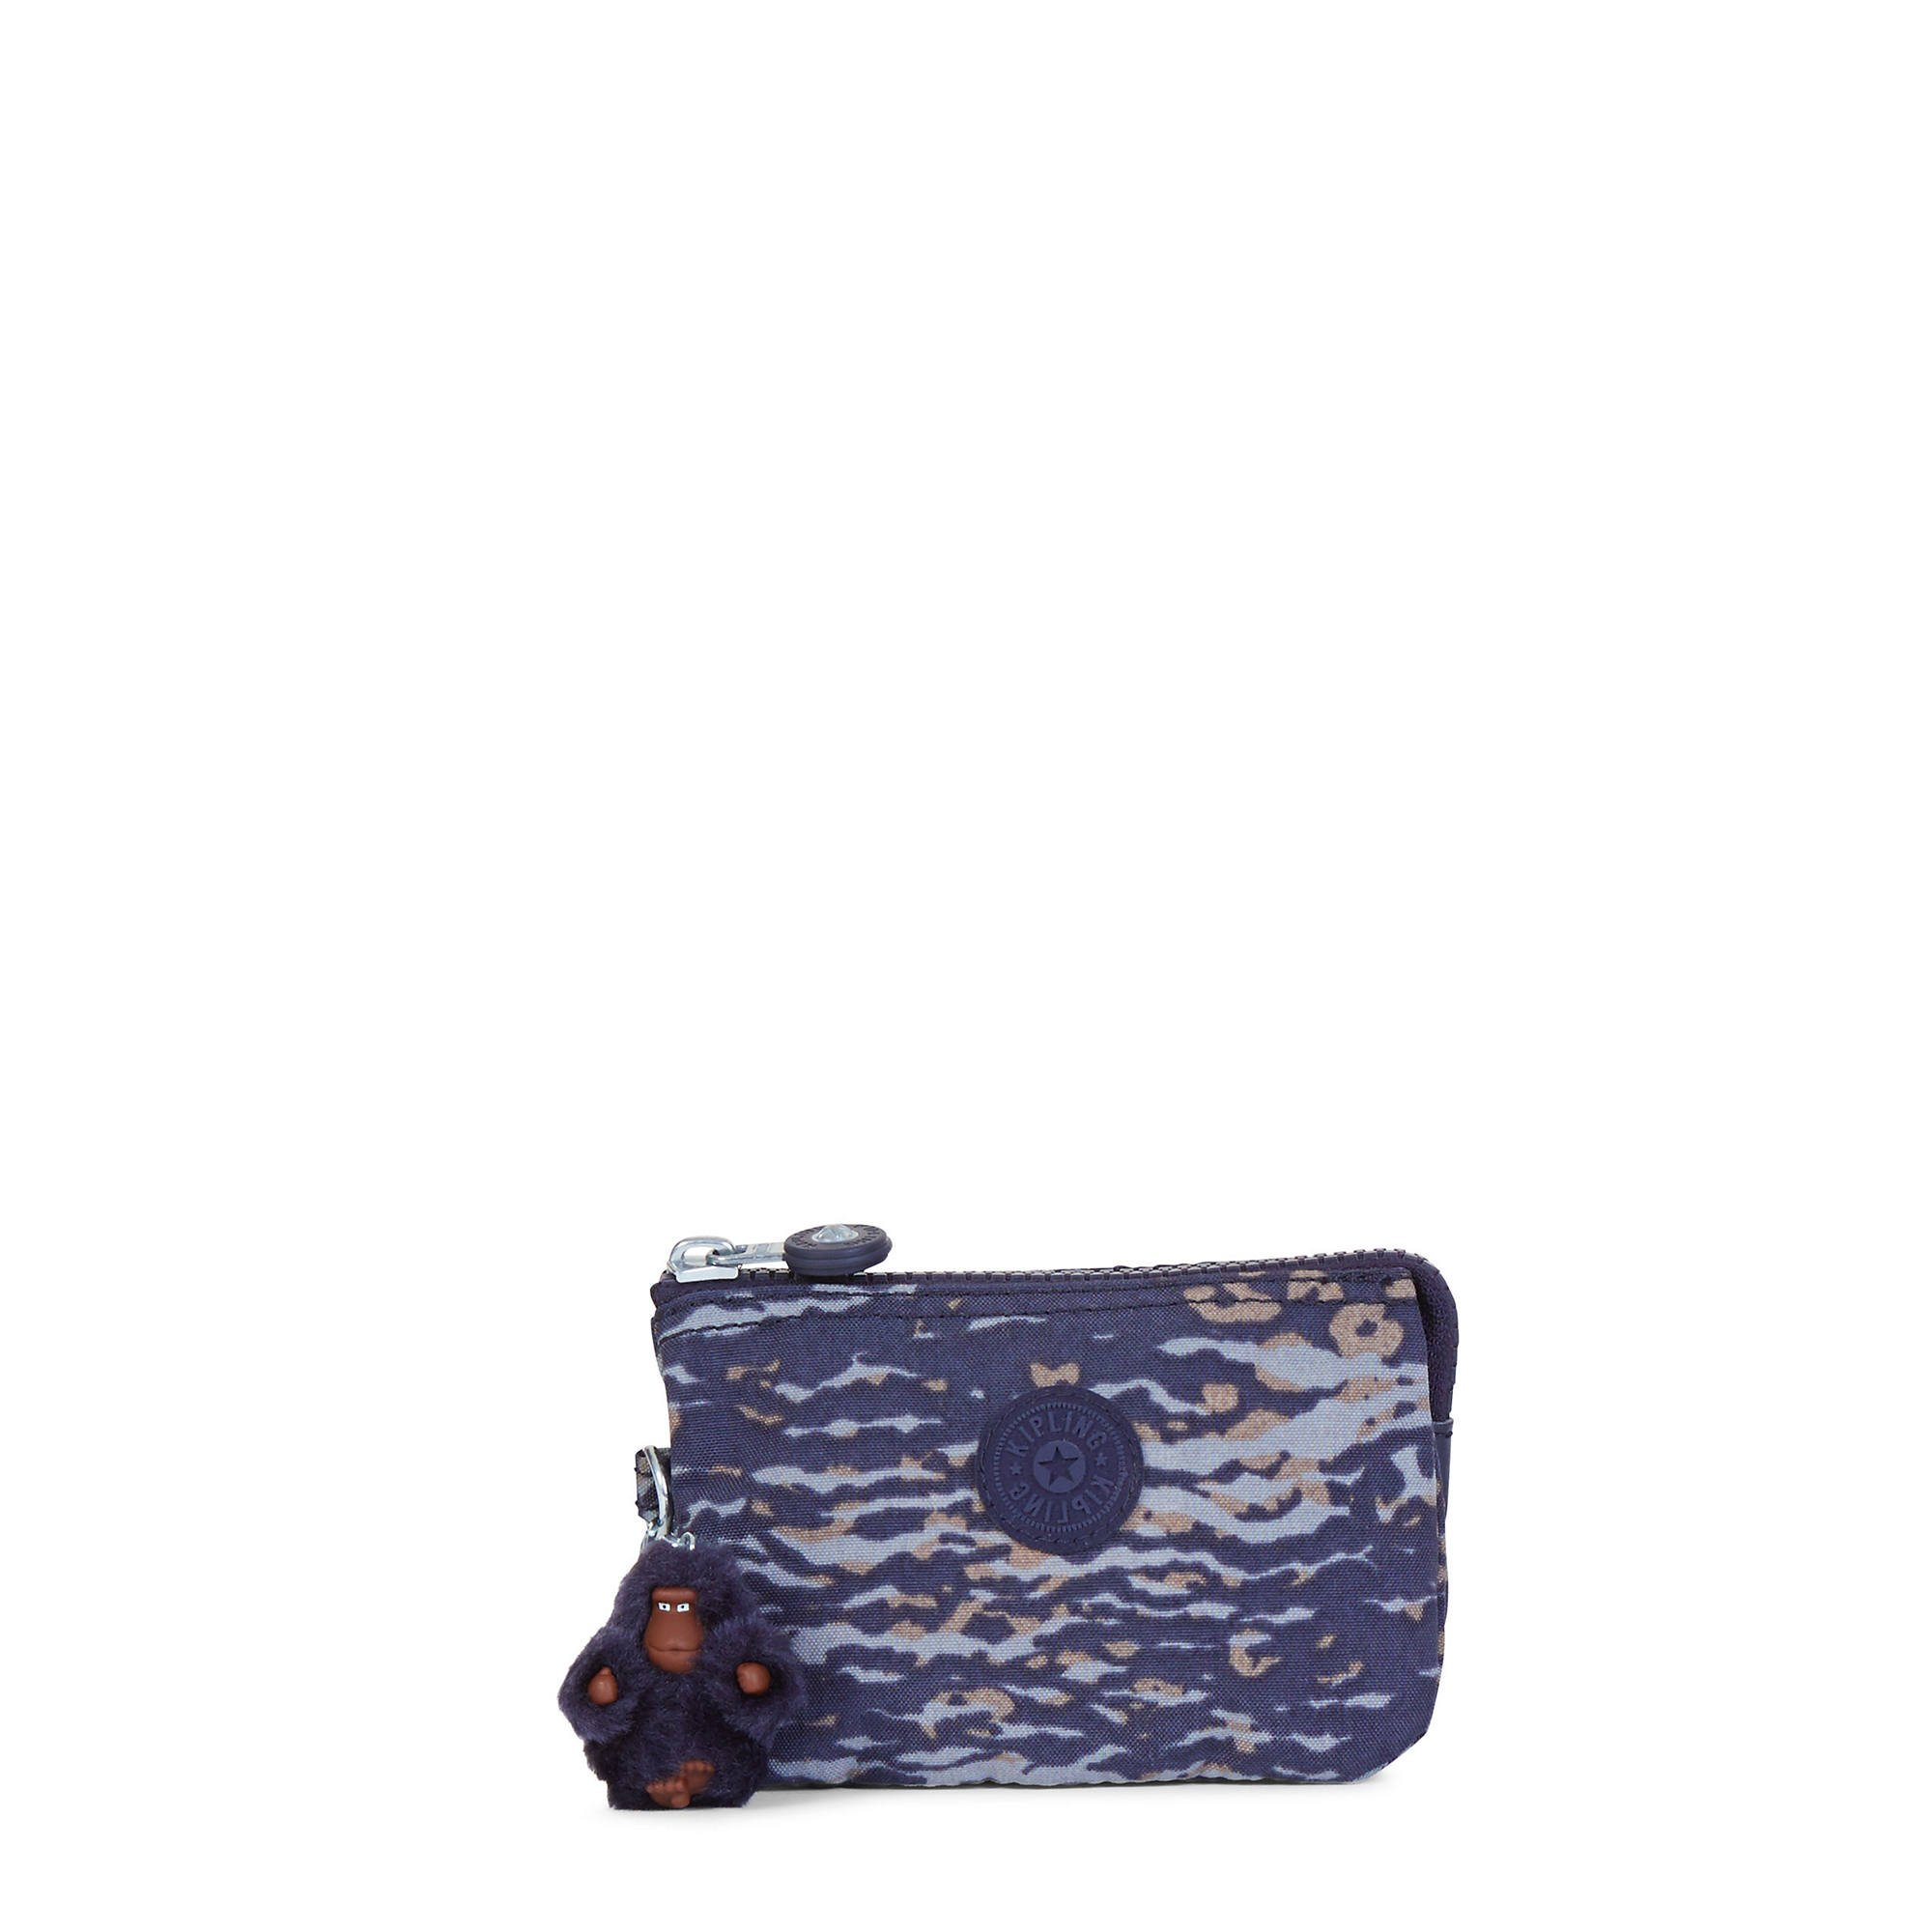 Kipling Women's Creativity Small Printed Pouch One Size Water Camo